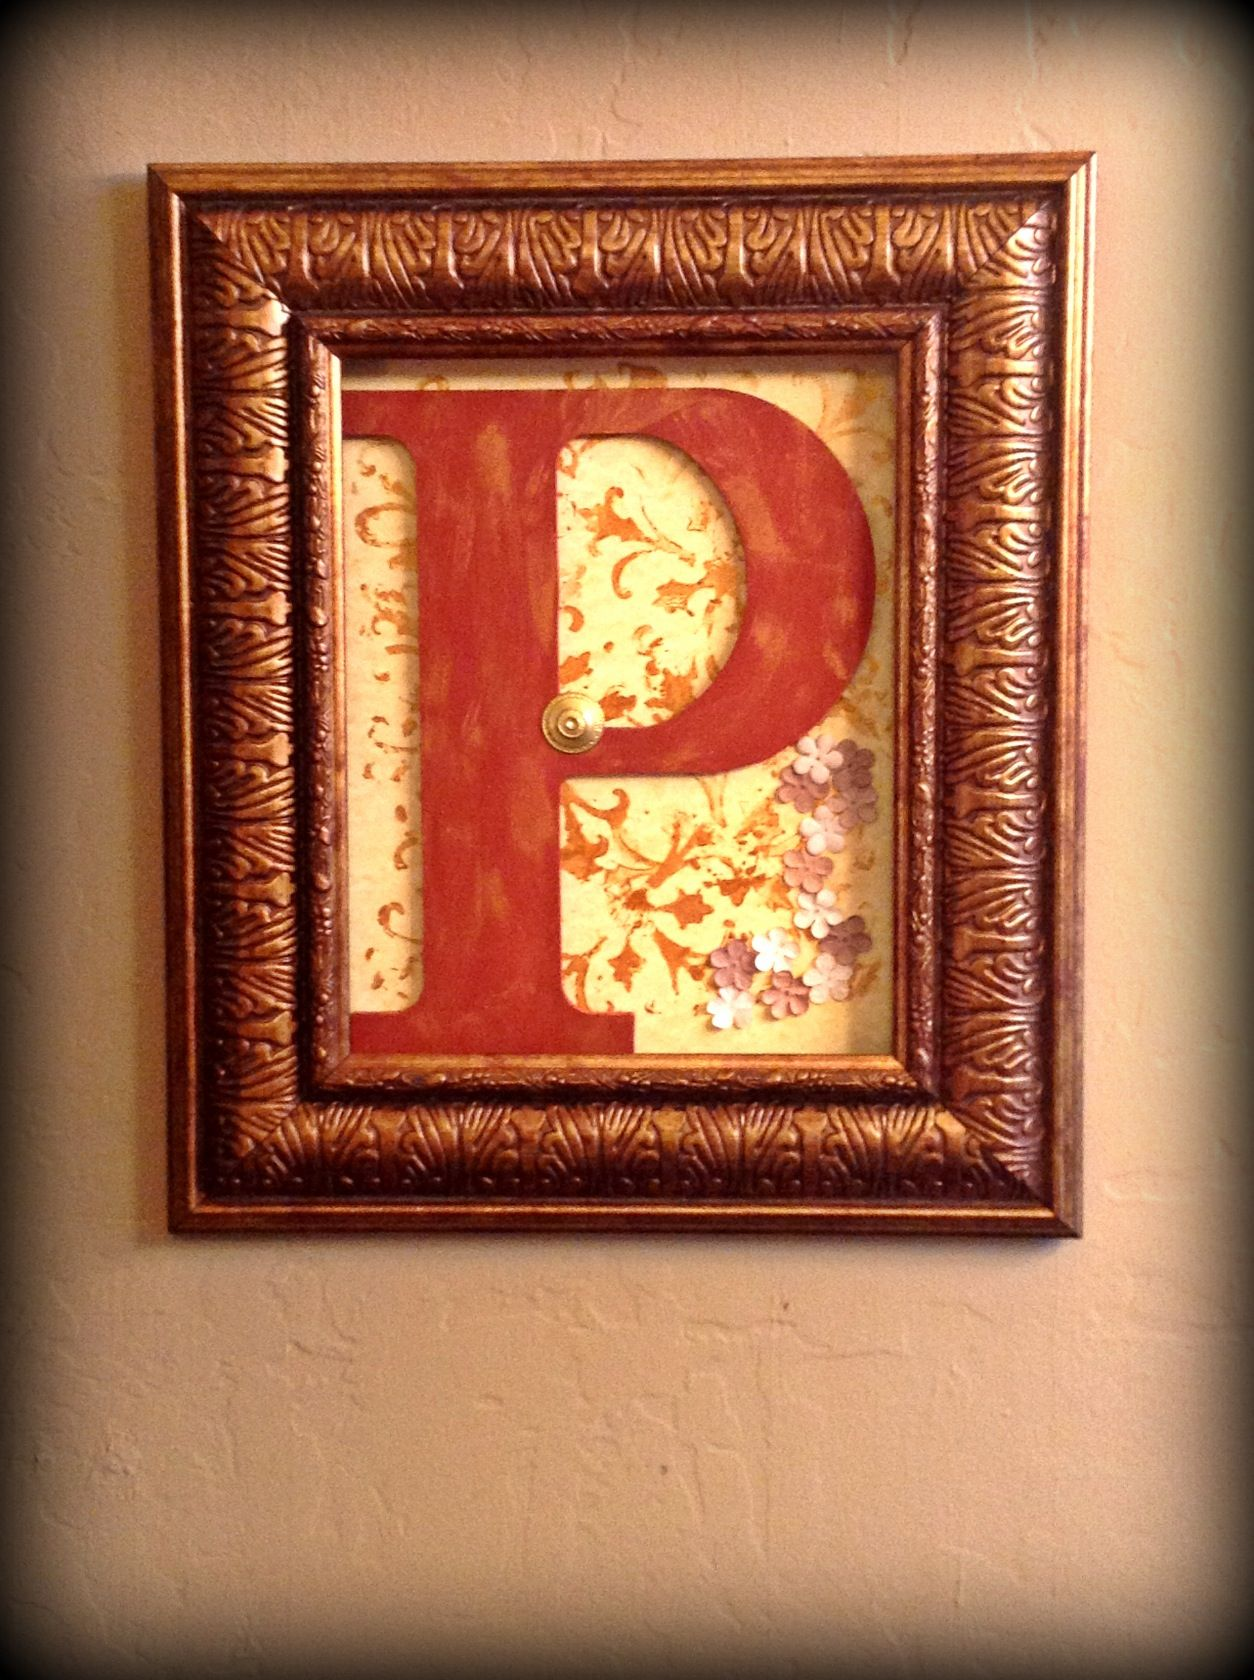 How to glue scrapbook paper to wood letters - How To Glue Scrapbook Paper On Wood Took Out The Glass From A Picture Frame